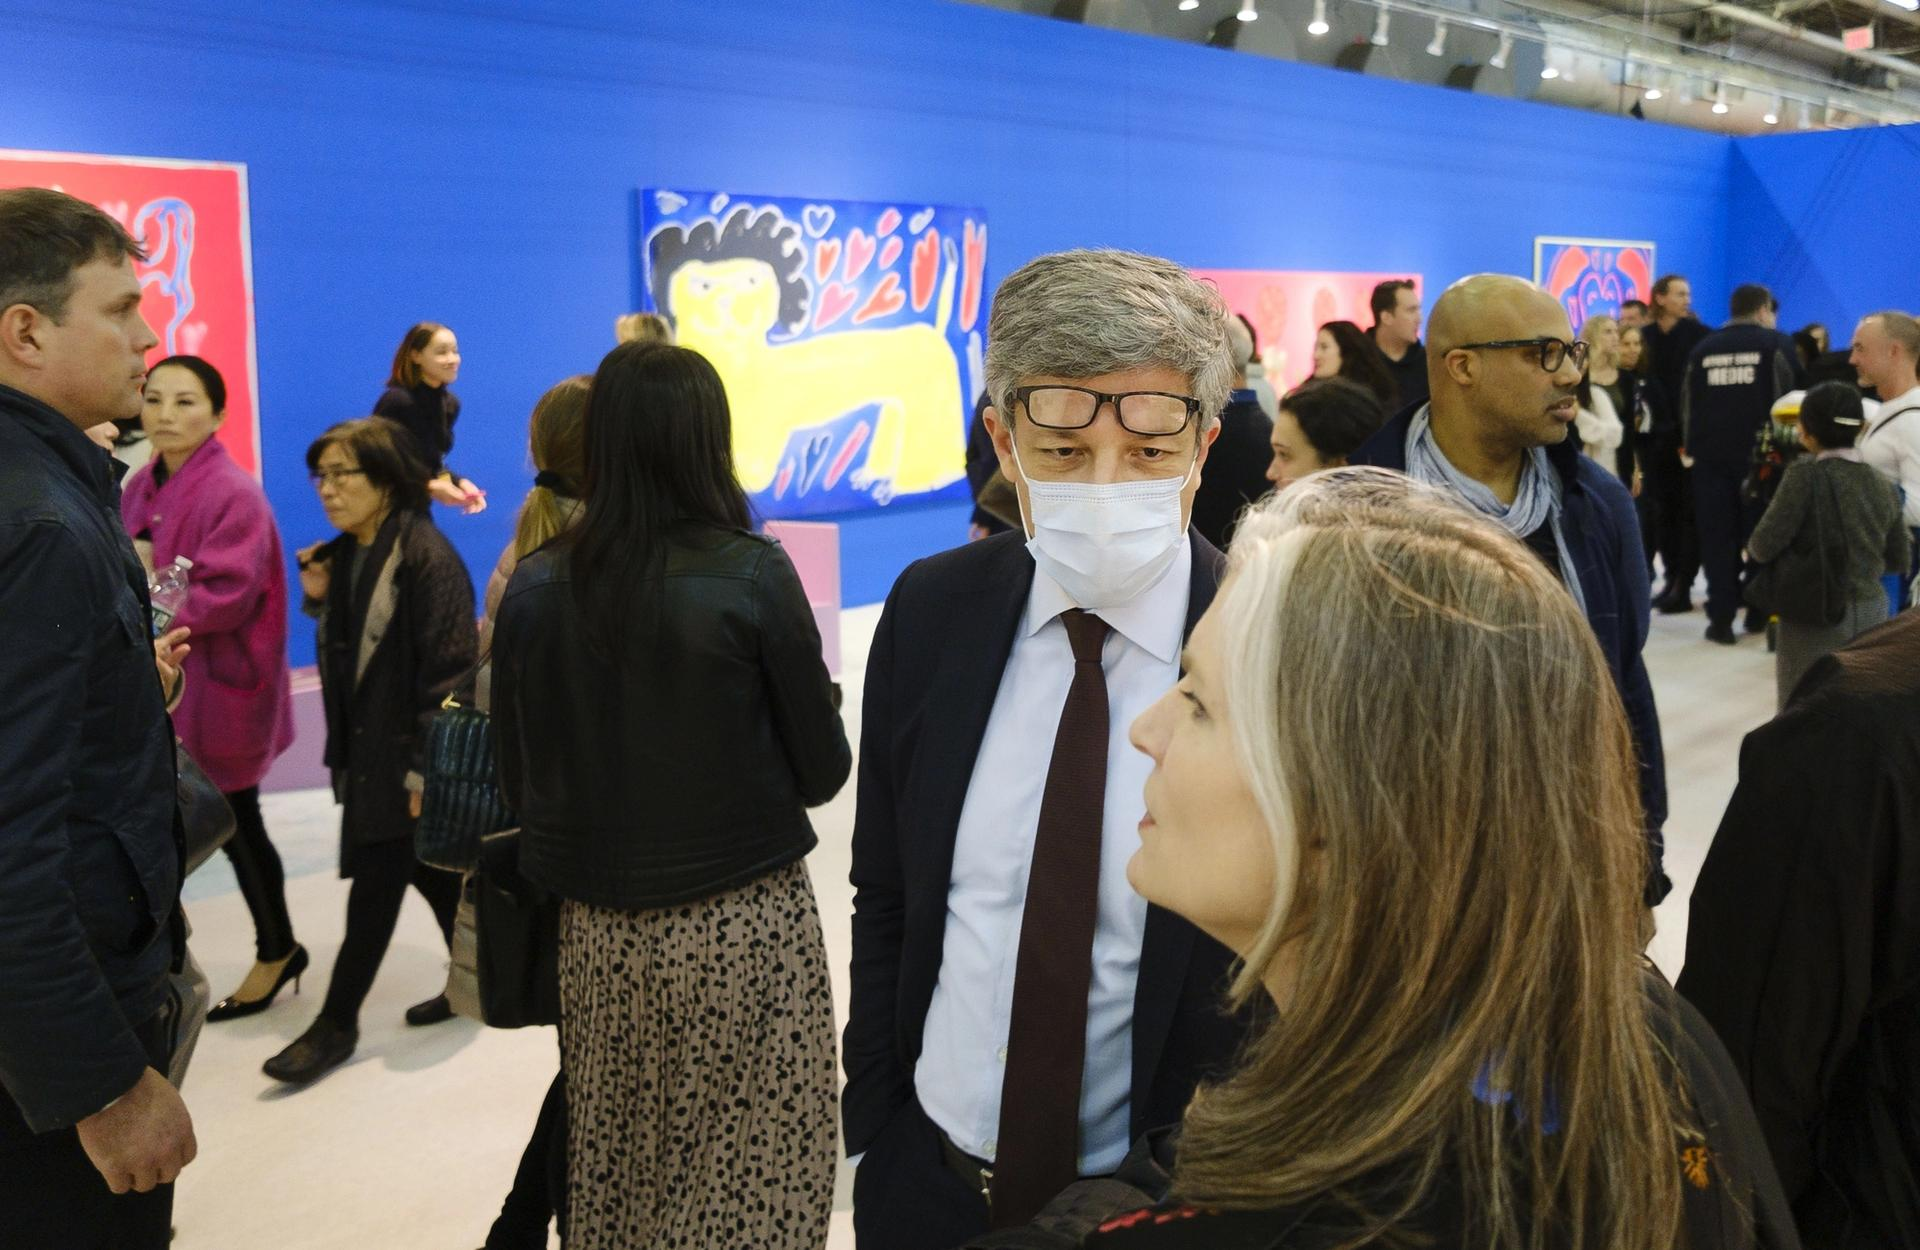 A man wears a protective face mask while visiting at the Armory Show. Justin Lane/EPA-EFE/Shutterstock